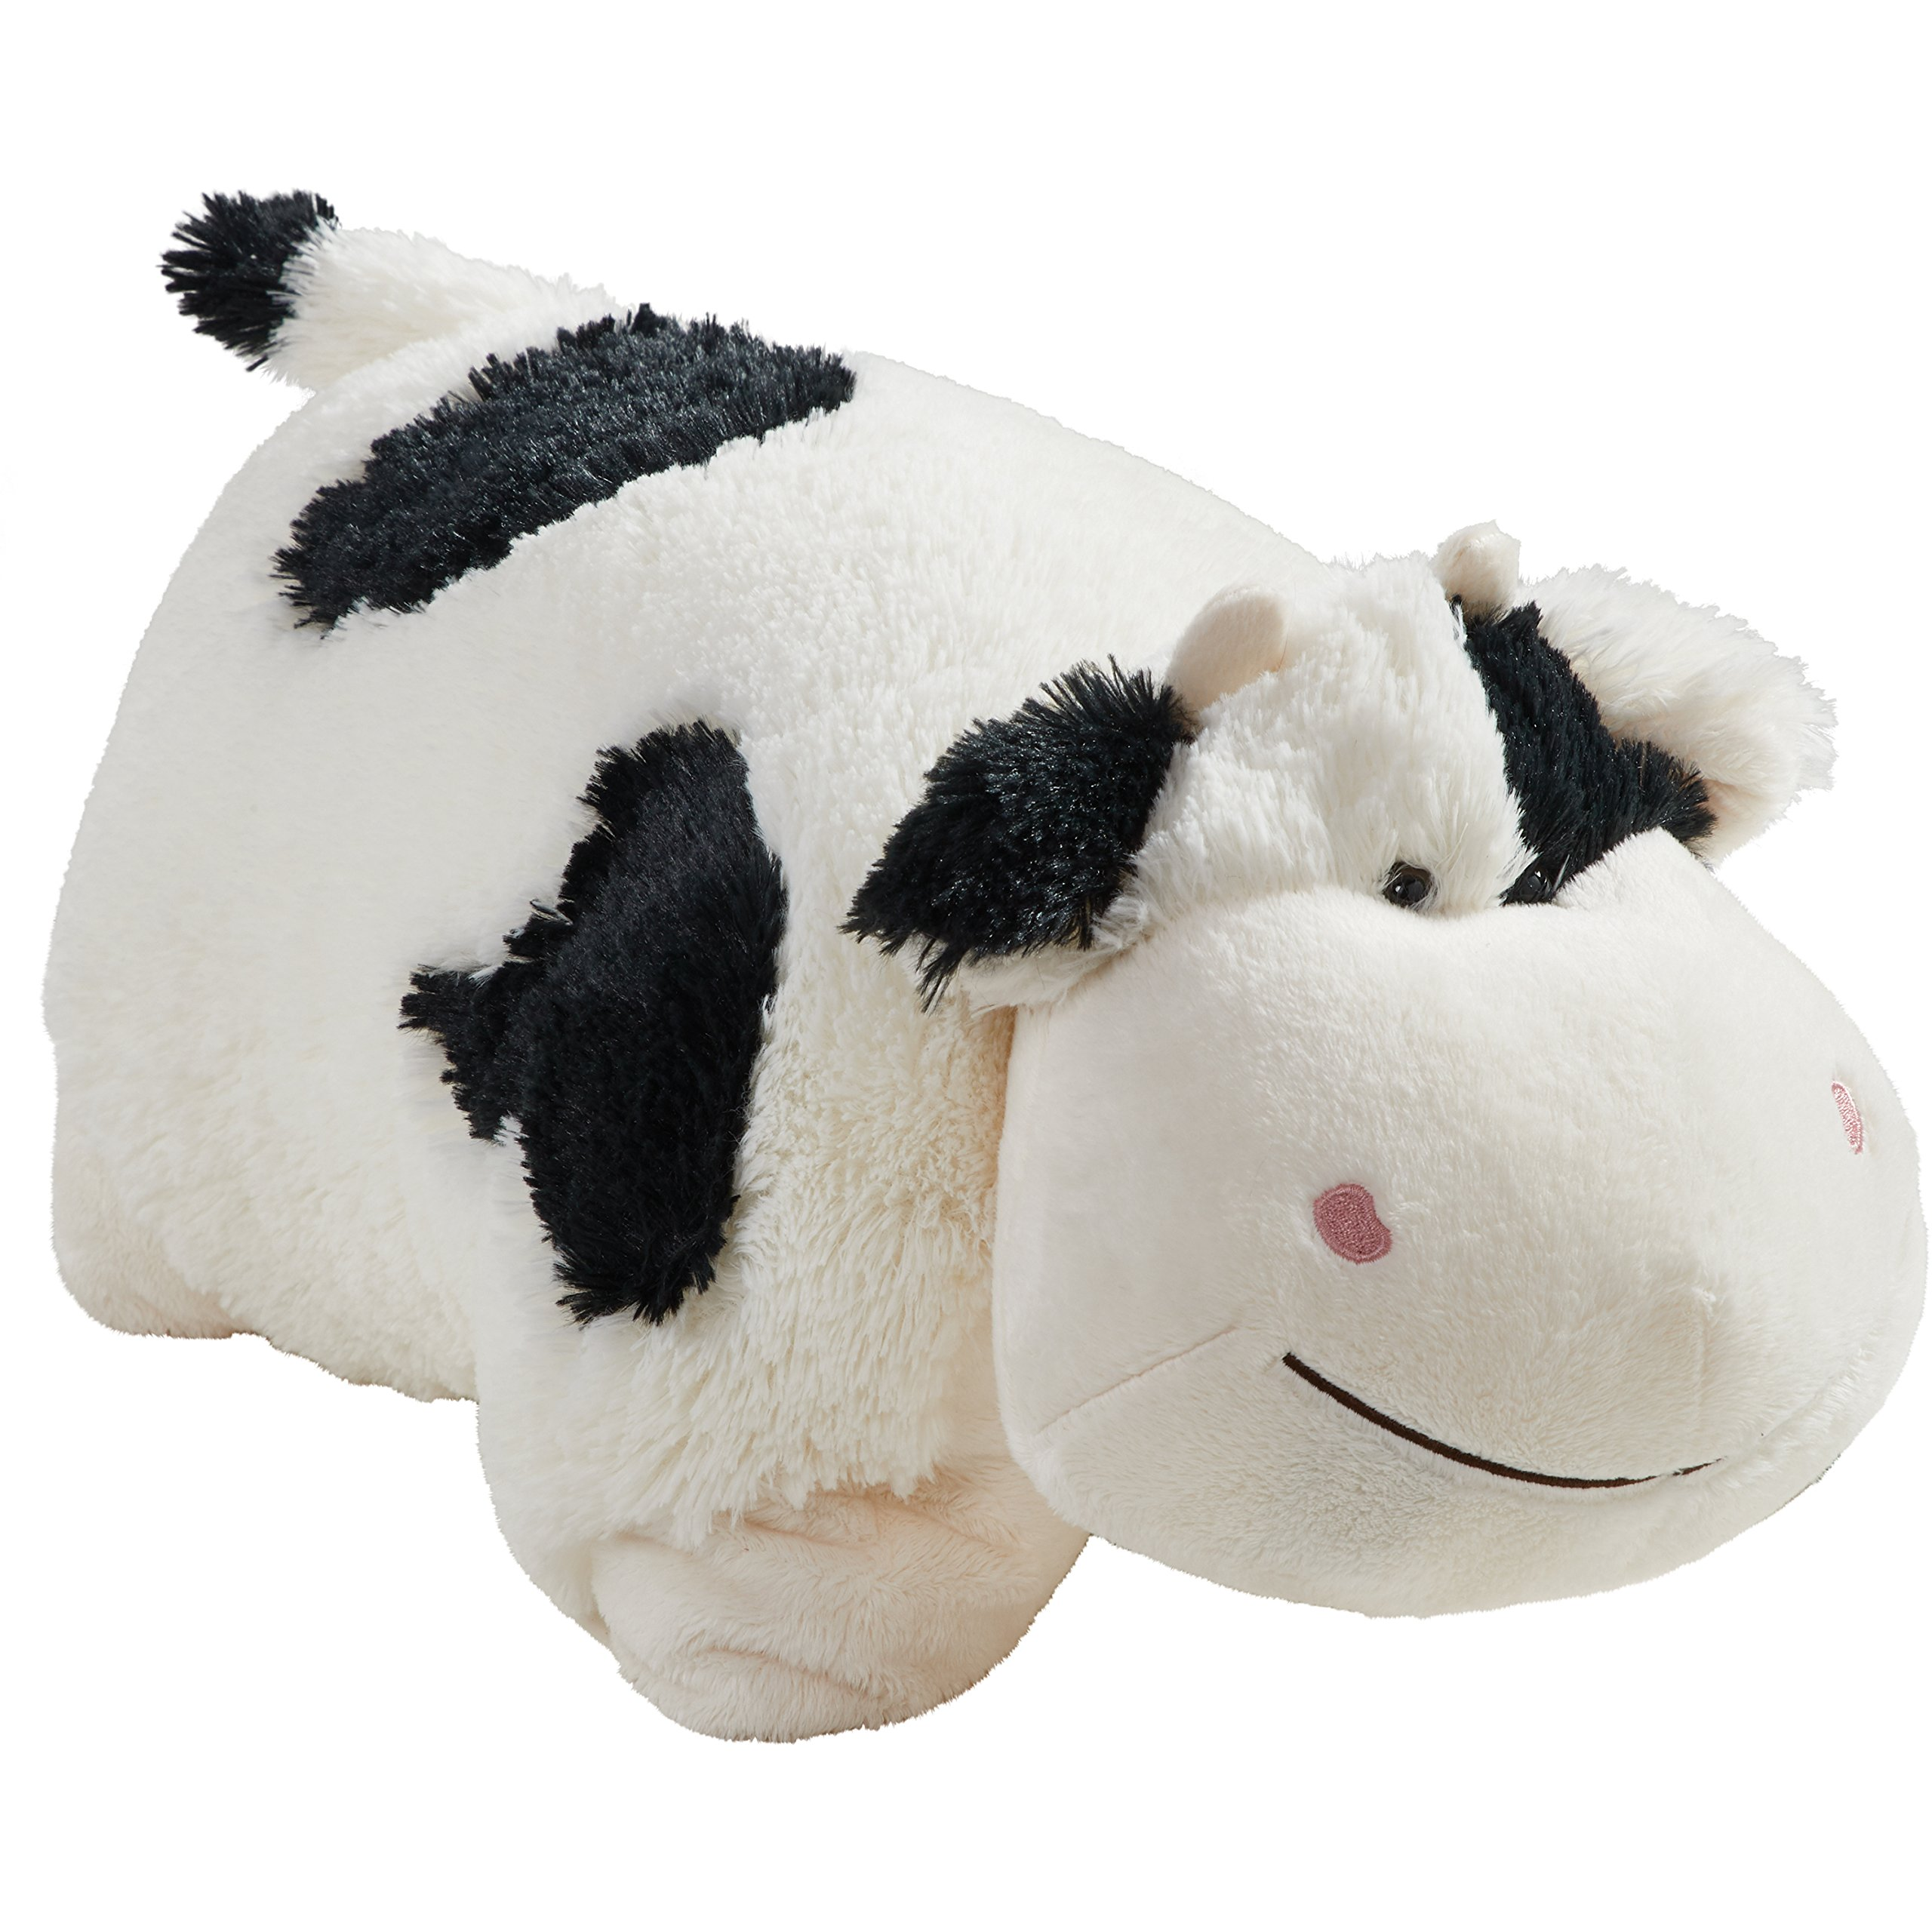 Pillow Pets Signature Cozy Cow 18'' Stuffed Animal Plush Toy